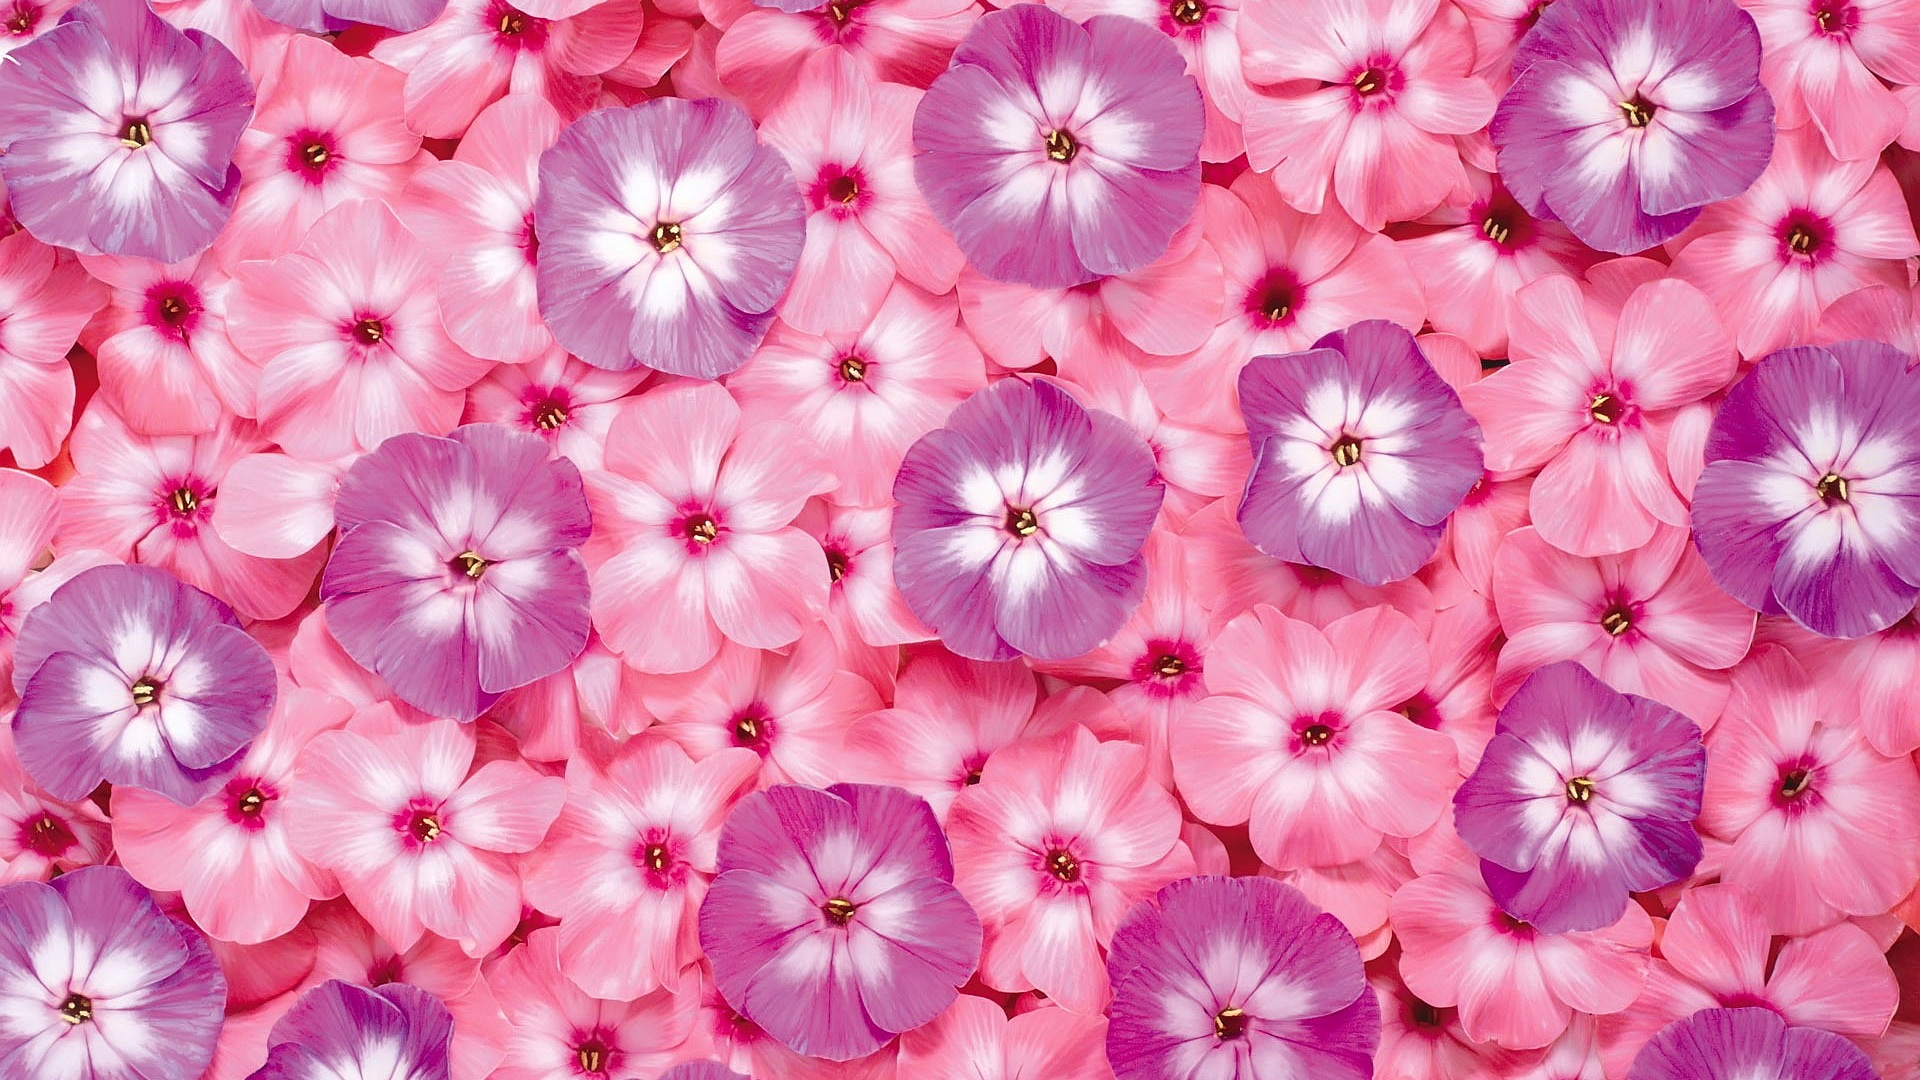 Cute Wallpaper Pictures Free Download Pink Flowers Wallpapers Movie Hd Wallpapers